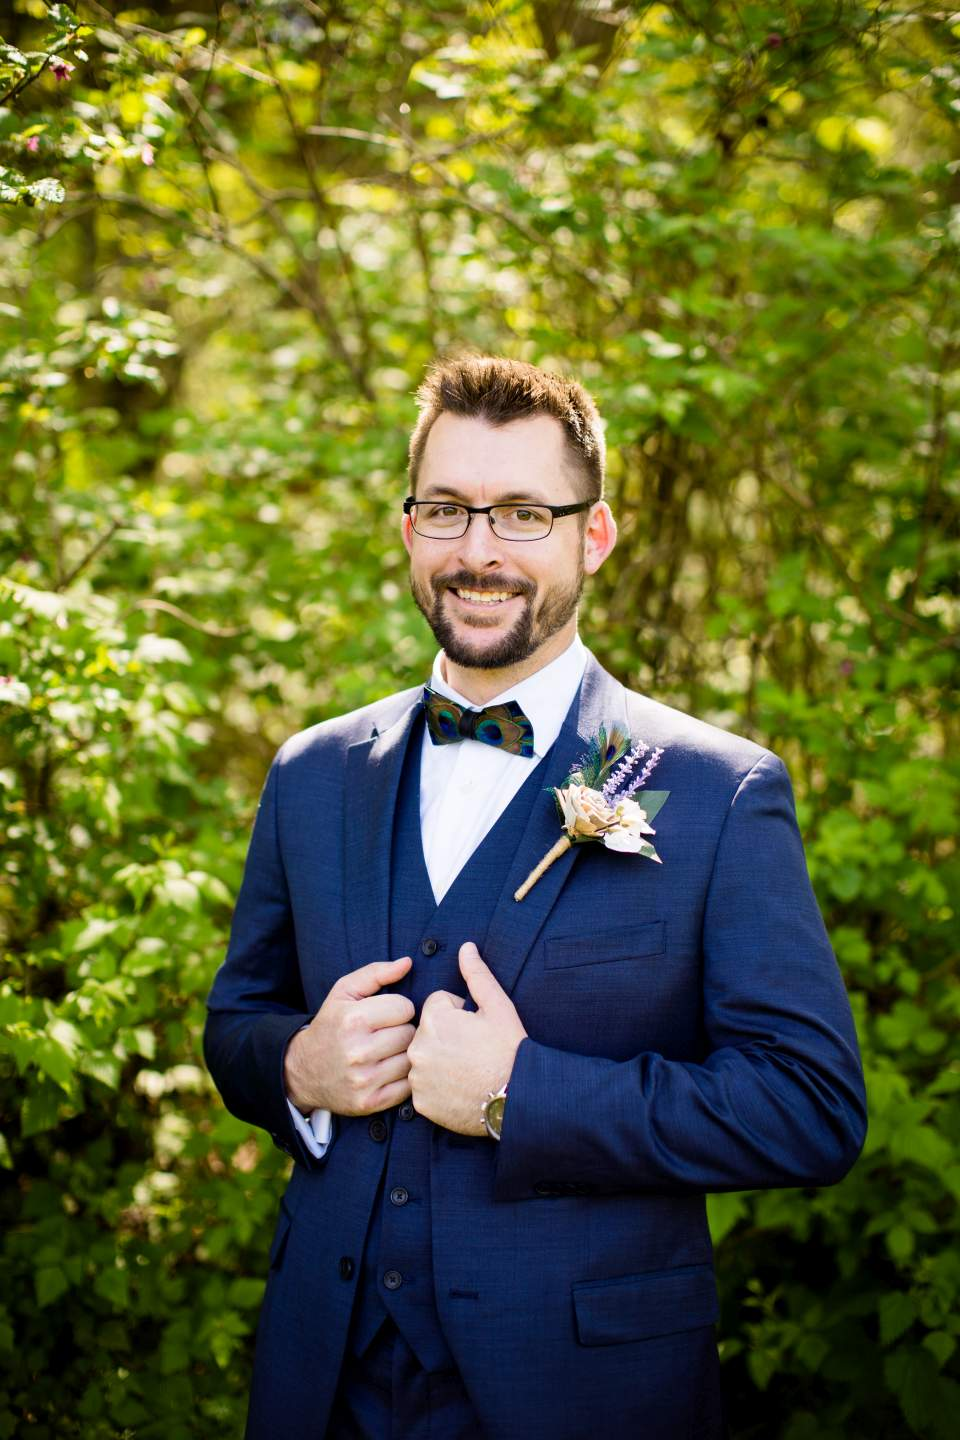 dapper groom photo